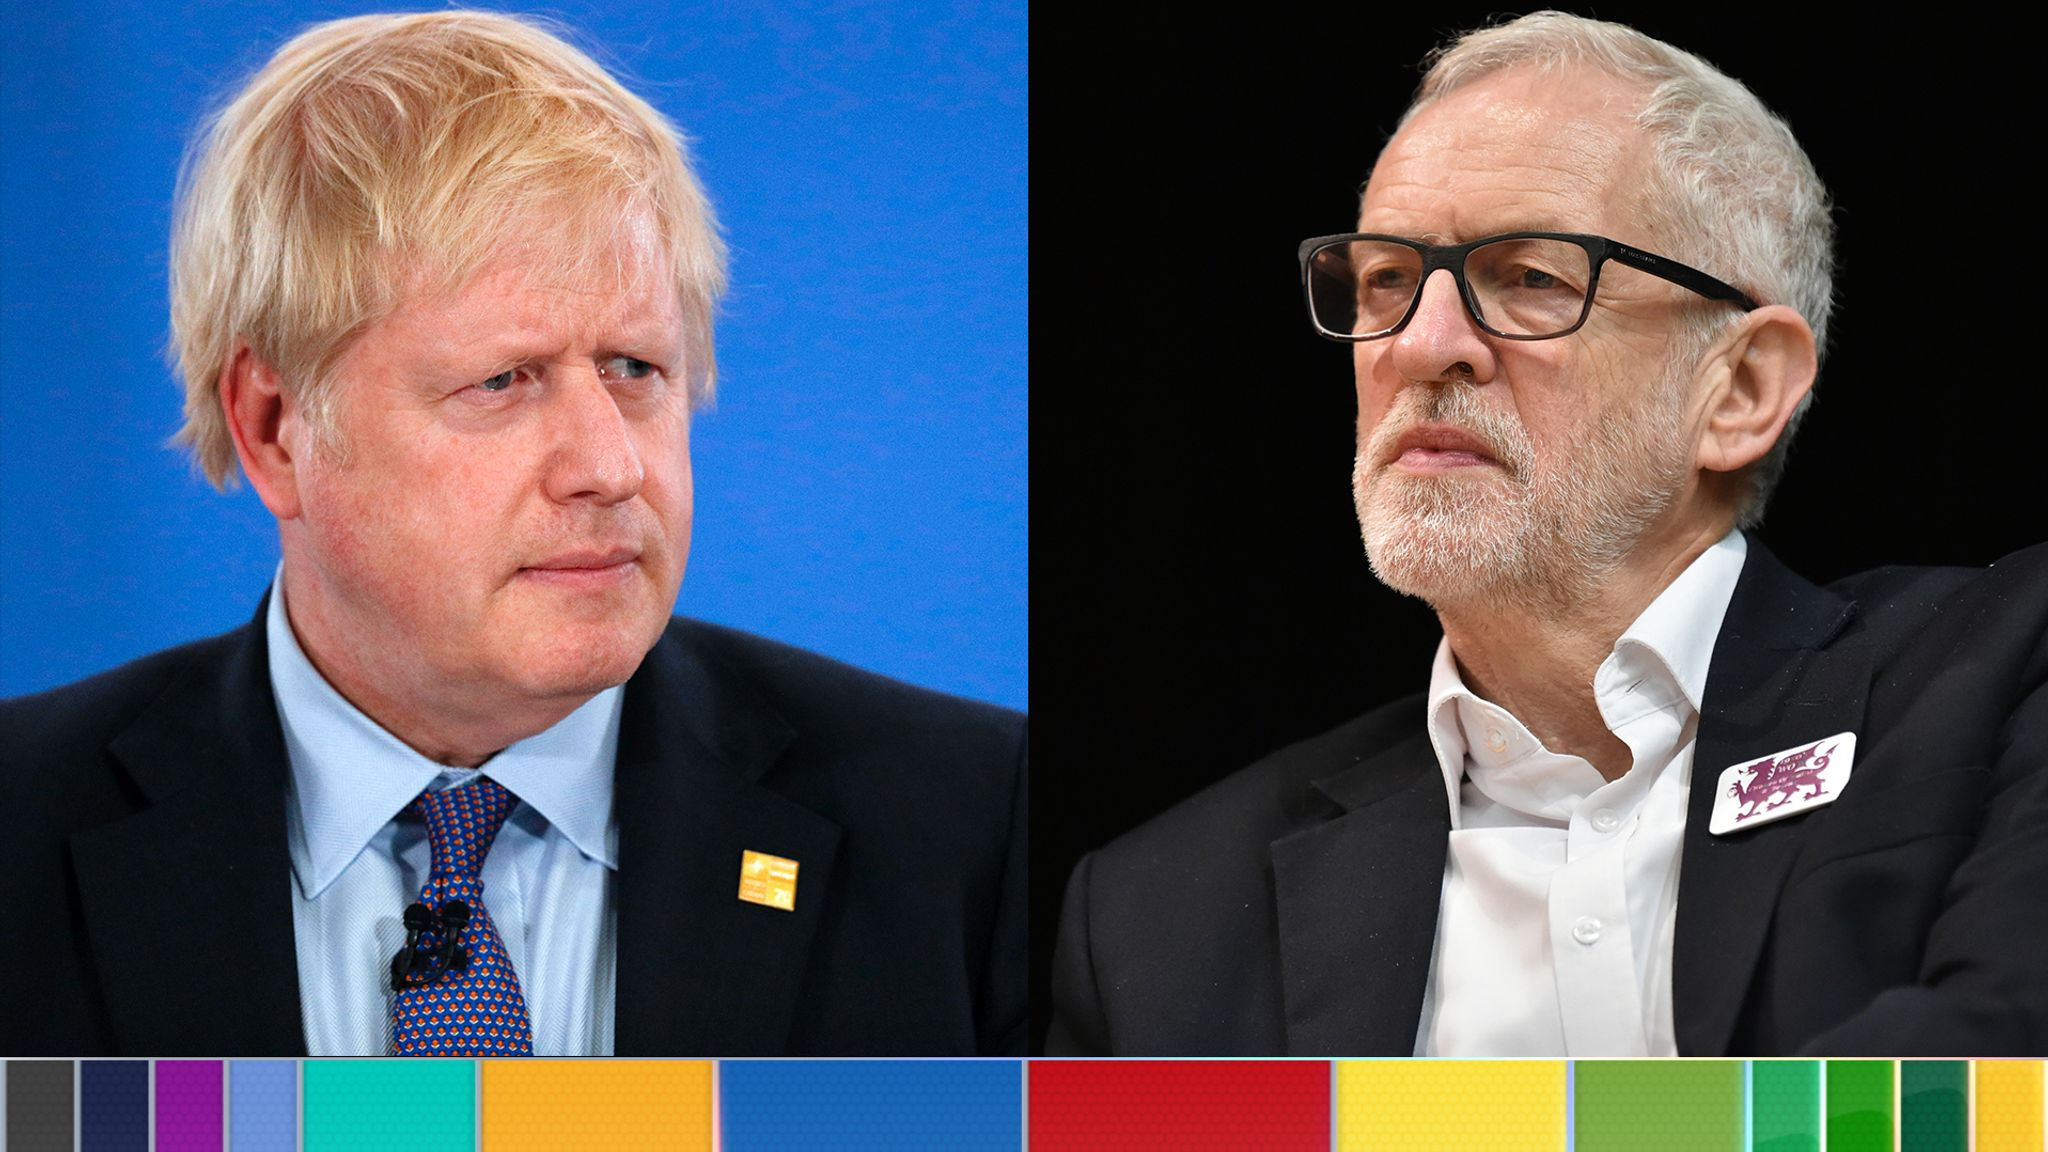 General election: PM seeks to return to Brexit message but Labour pile on pressure over NHS